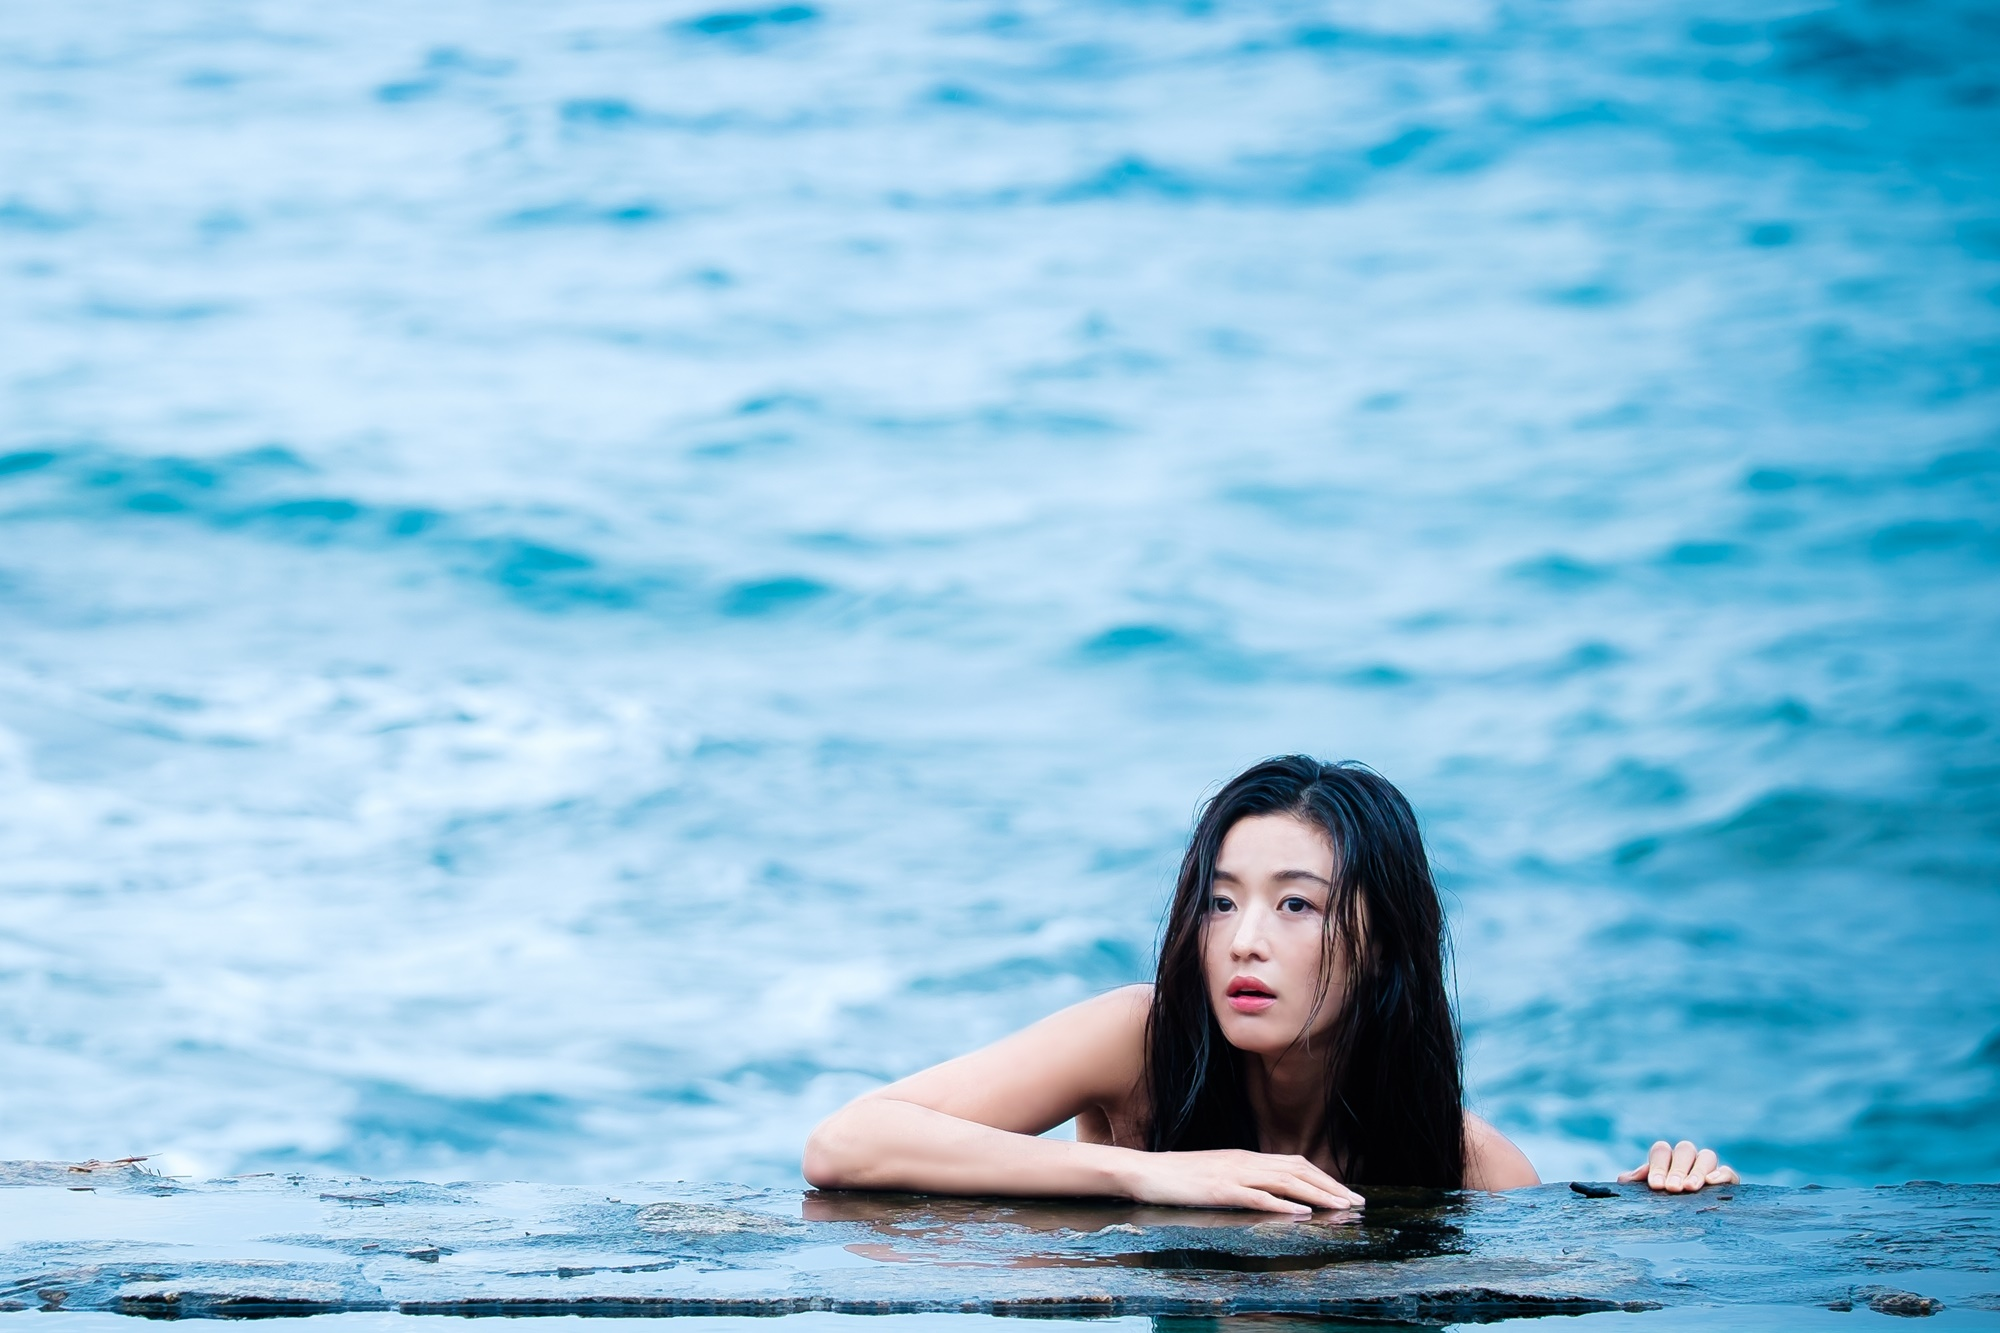 Jun Ji Hyun Explains How The Mermaid Is Different From Her Previous Role As Cheon Song Yi